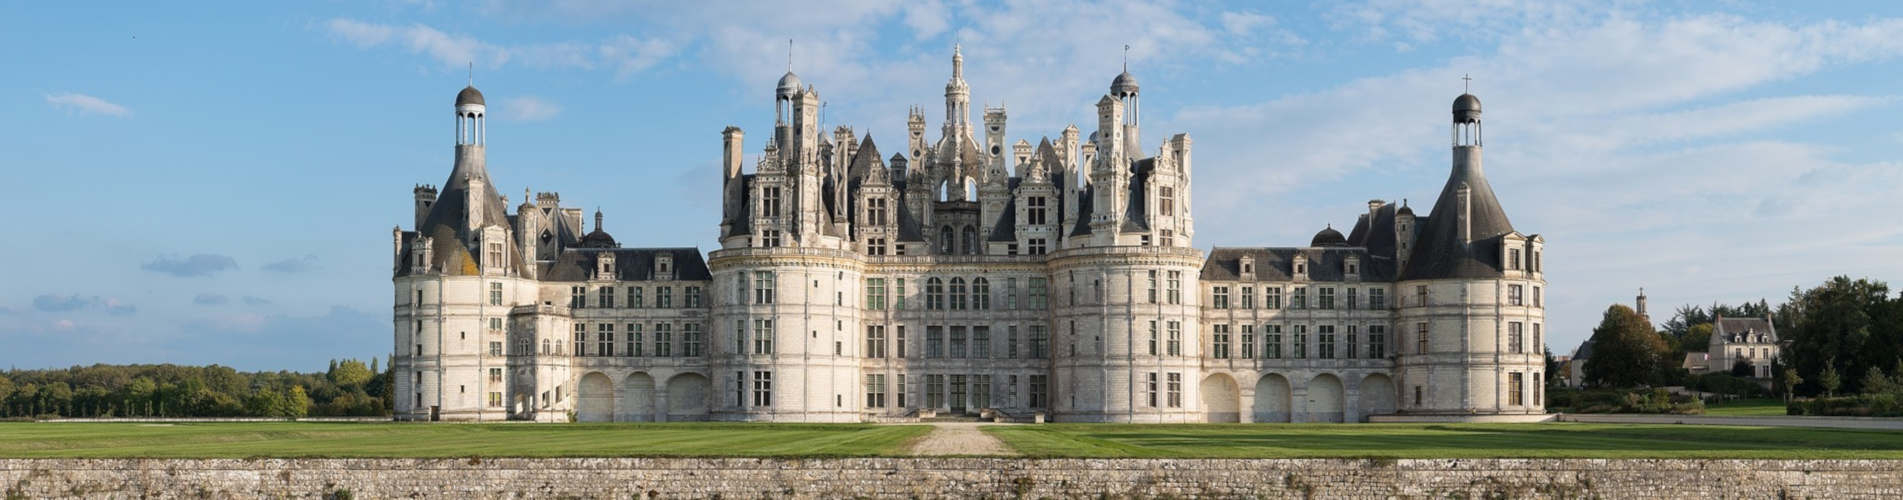 Tourism Chambord | Visit Chambord Castle | Chambord Region For Recent Chambord Castle I European Wall Hangings (View 4 of 20)